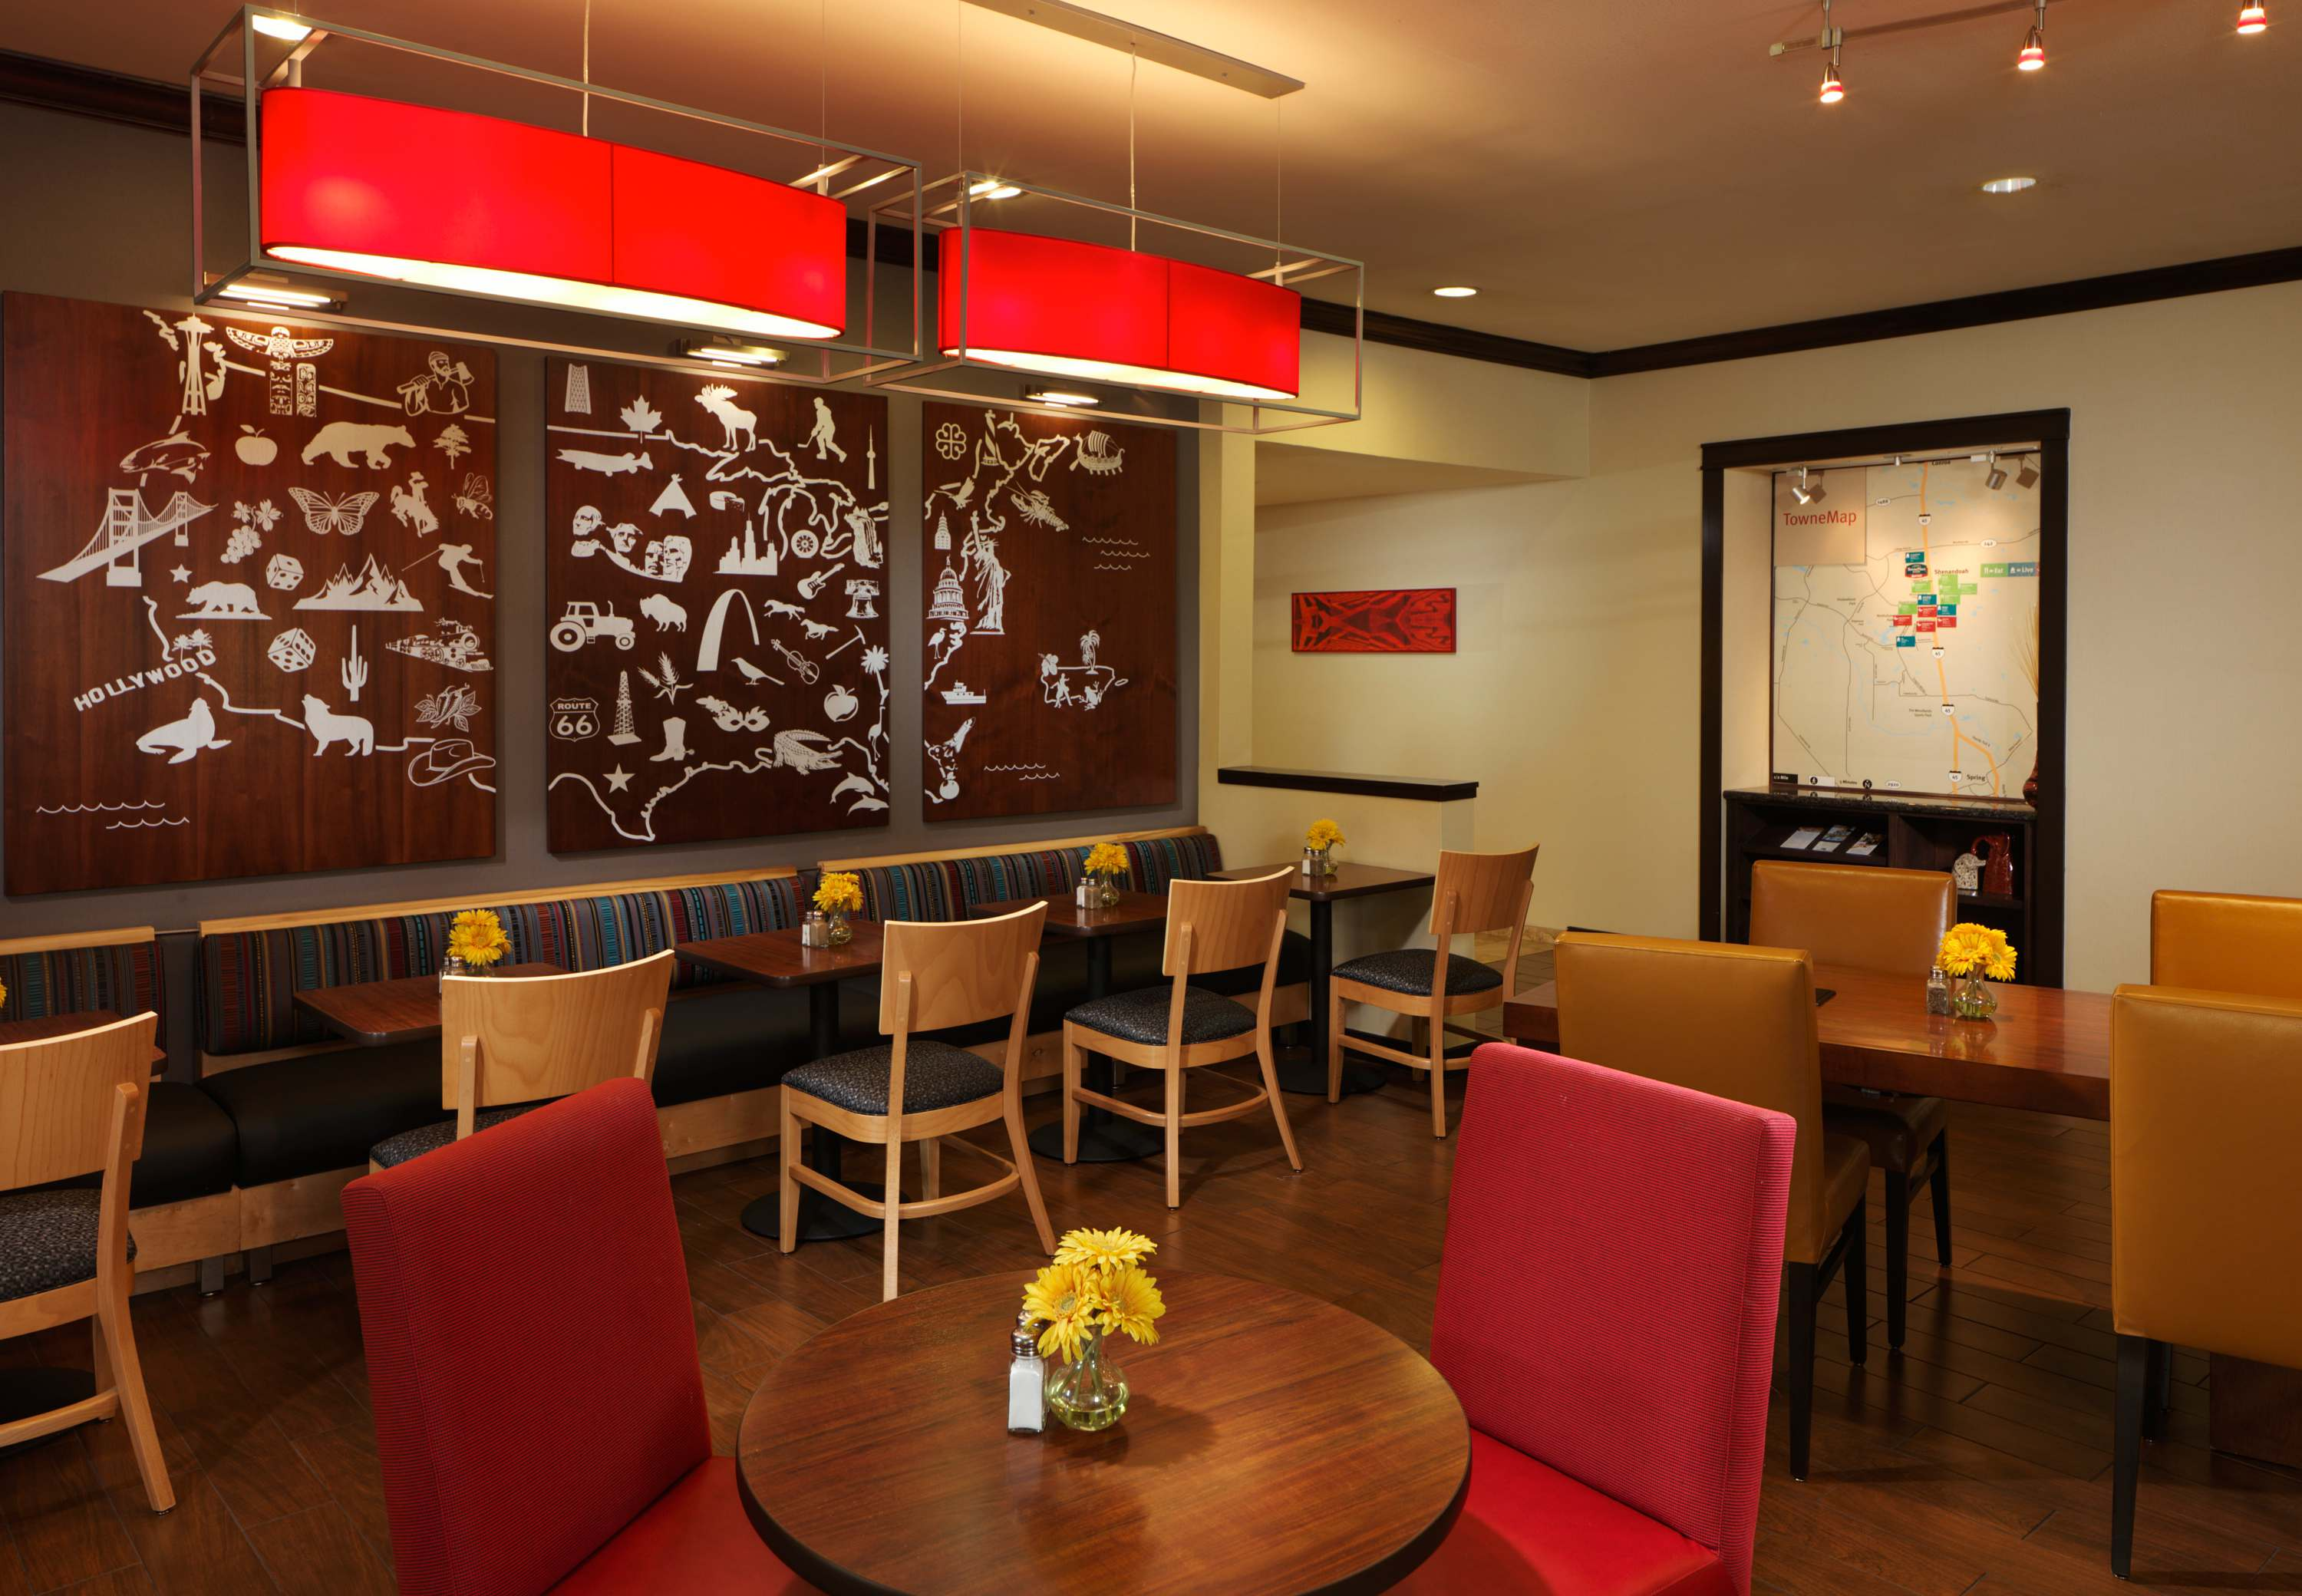 TownePlace Suites by Marriott Houston North/Shenandoah image 6